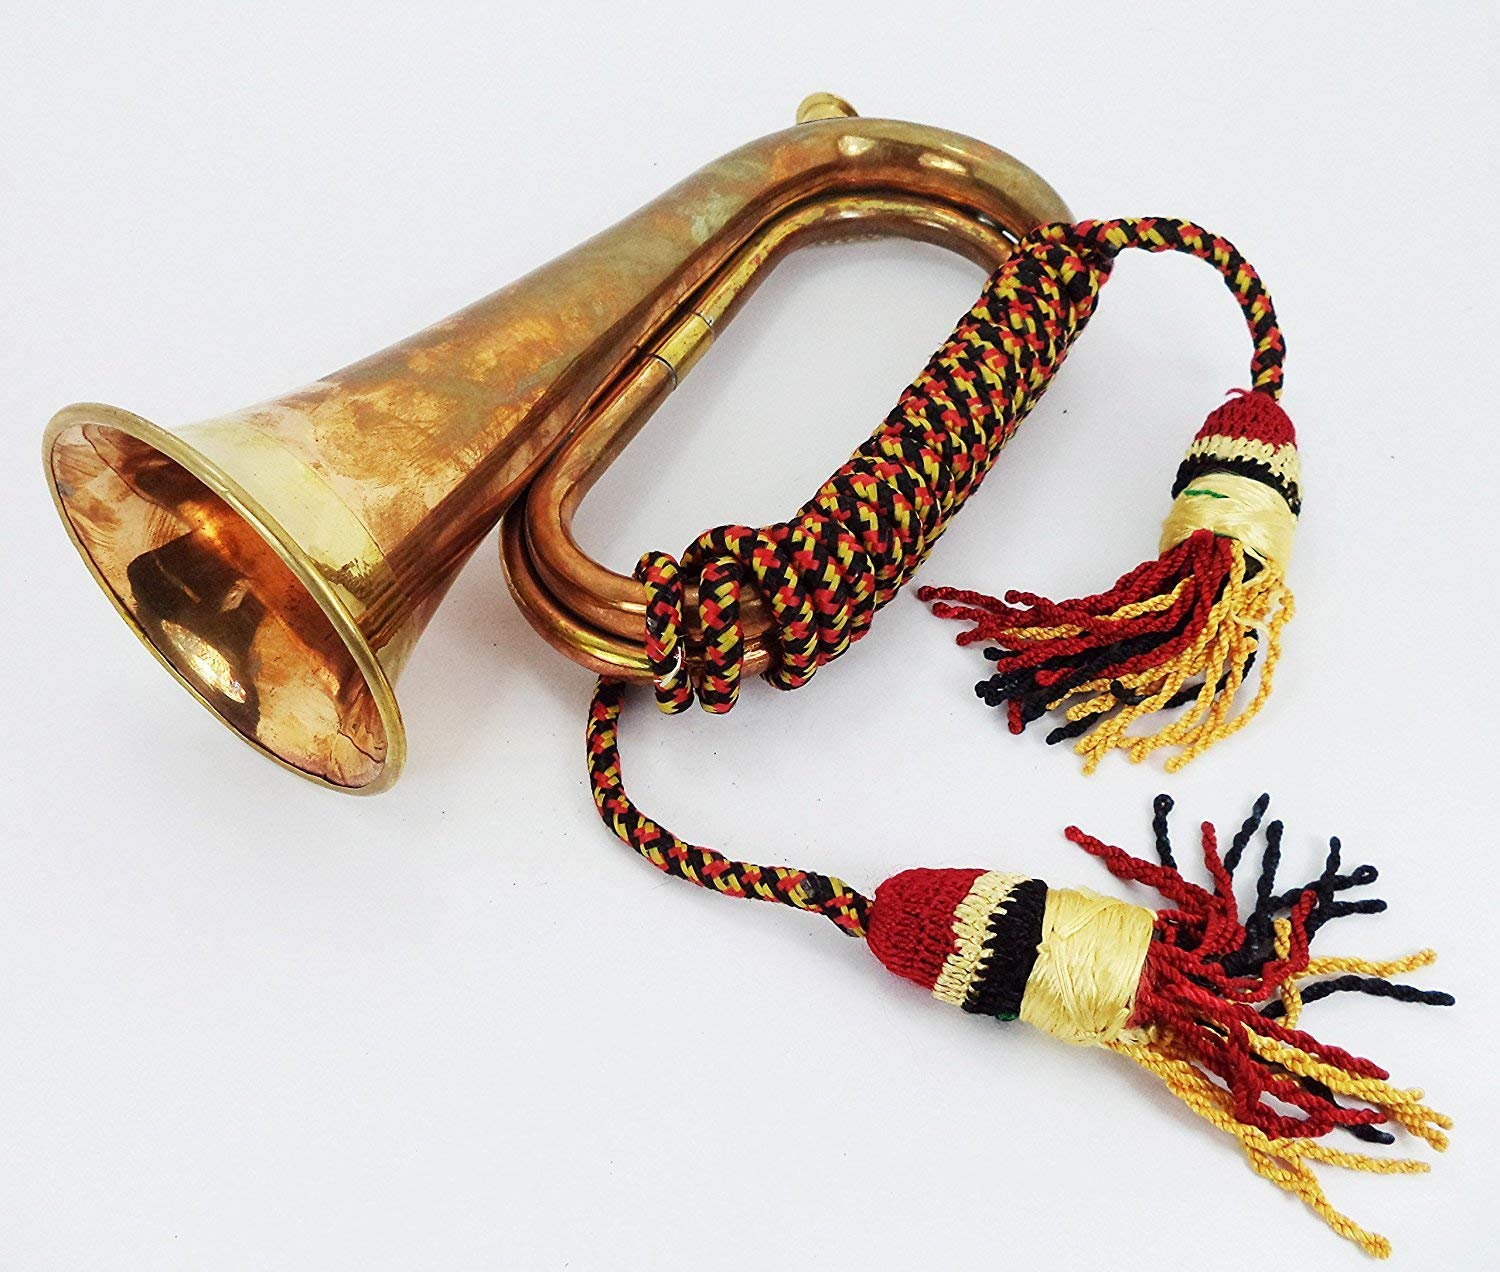 Boy Scout Brass and Copper Blowing Bugle Attack War Command Signal Horn 10.6'' Inch with Beautiful Colourful Rope Binding by NauticalMart